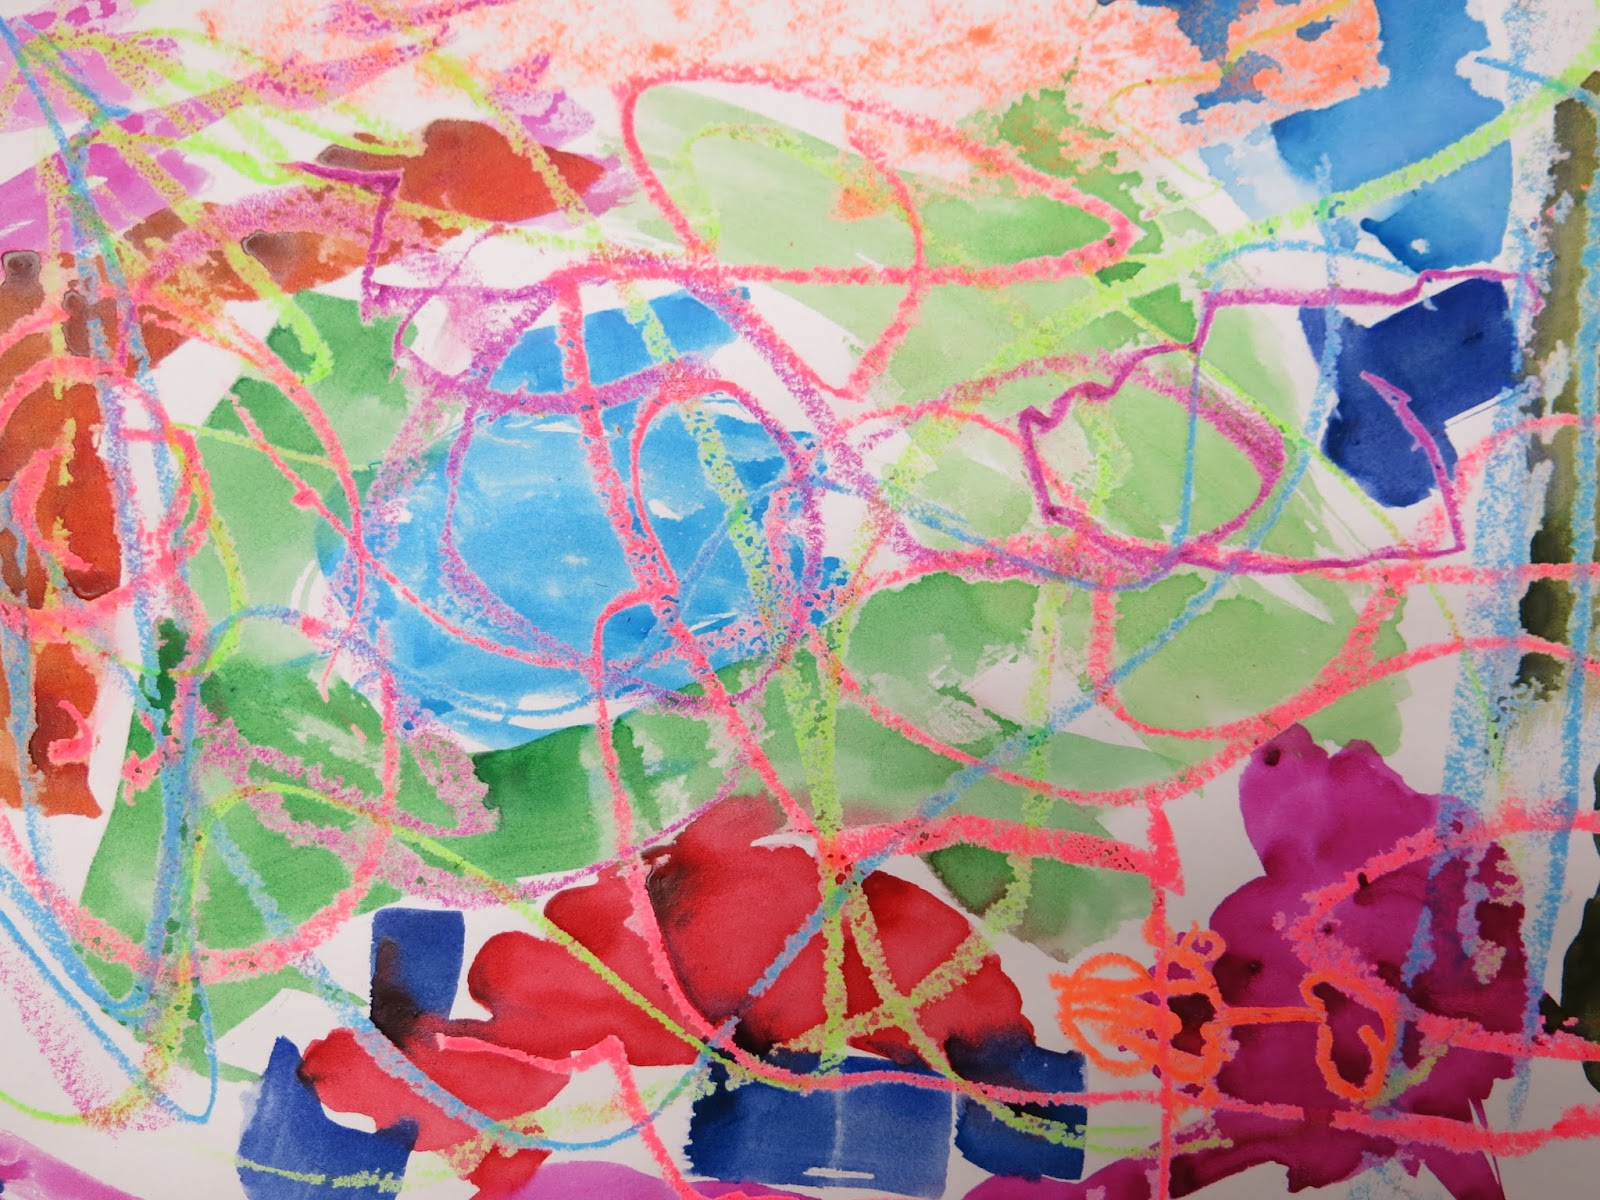 Thank You For Letting Me Share These Amazing Abstract Masterpiece By First Grade With Yall I Hope They Make As Happy